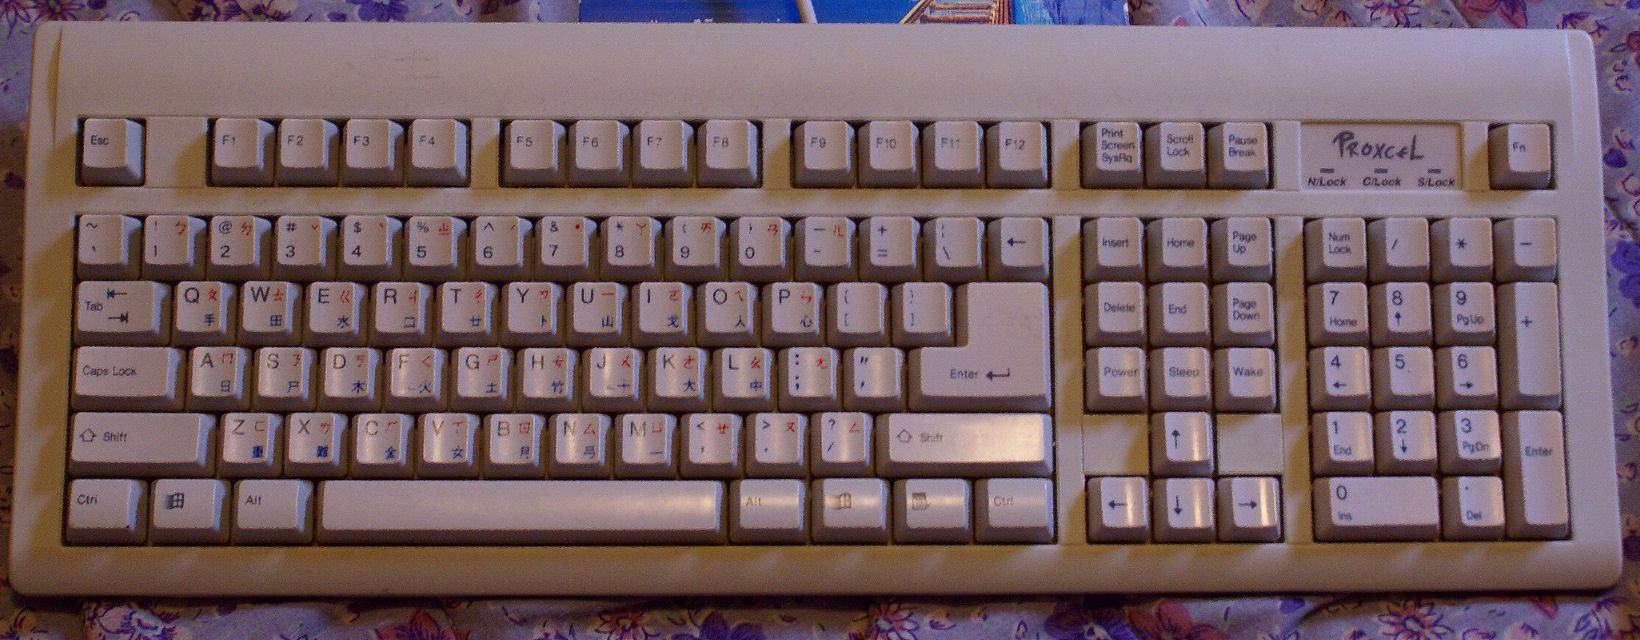 Keyboards for genuinely large character sets biocorpaavc